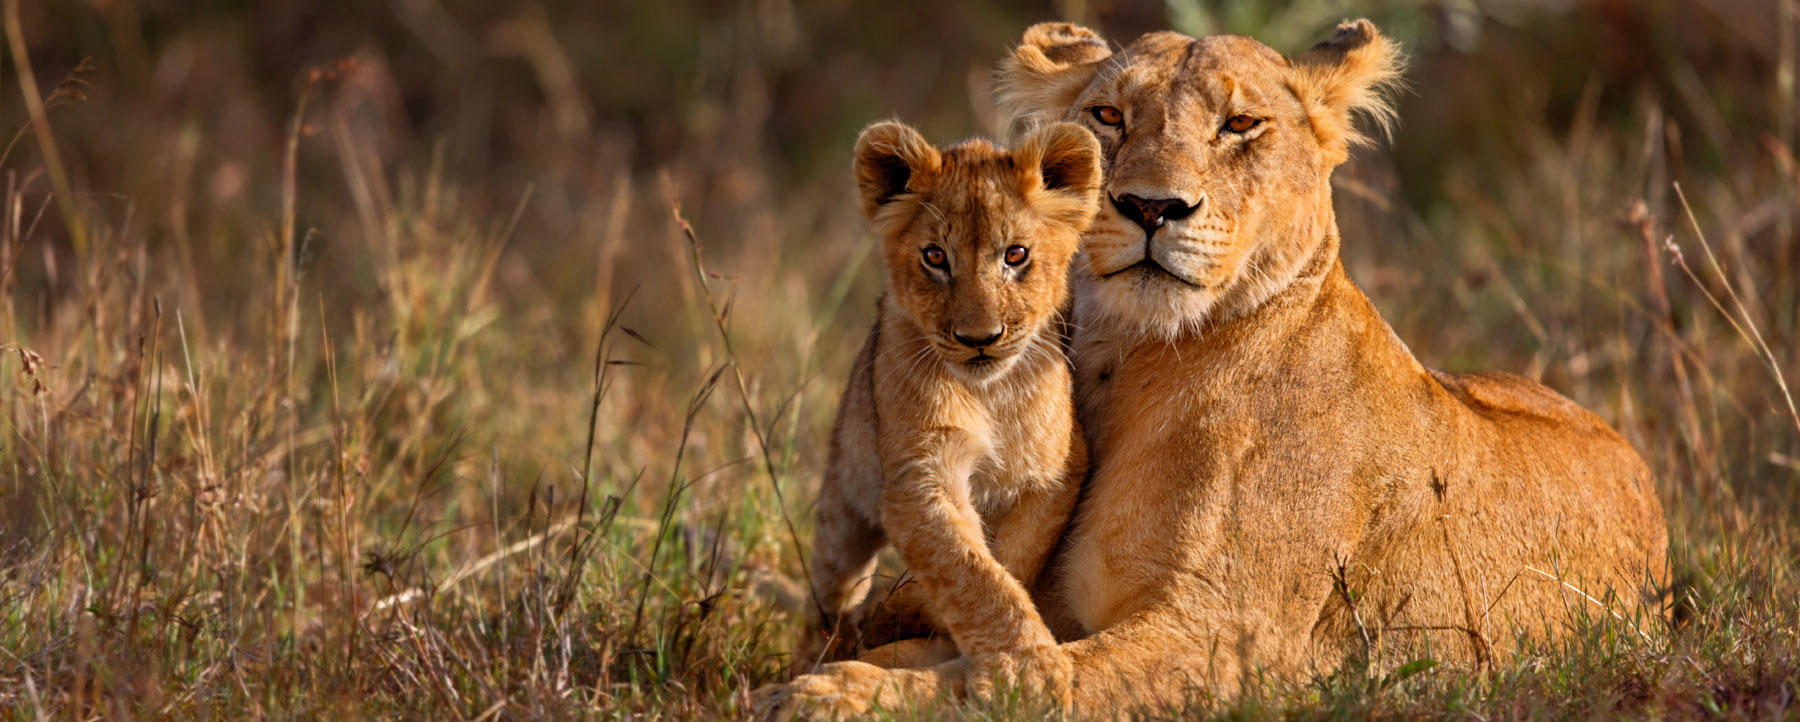 Lion mother with cub